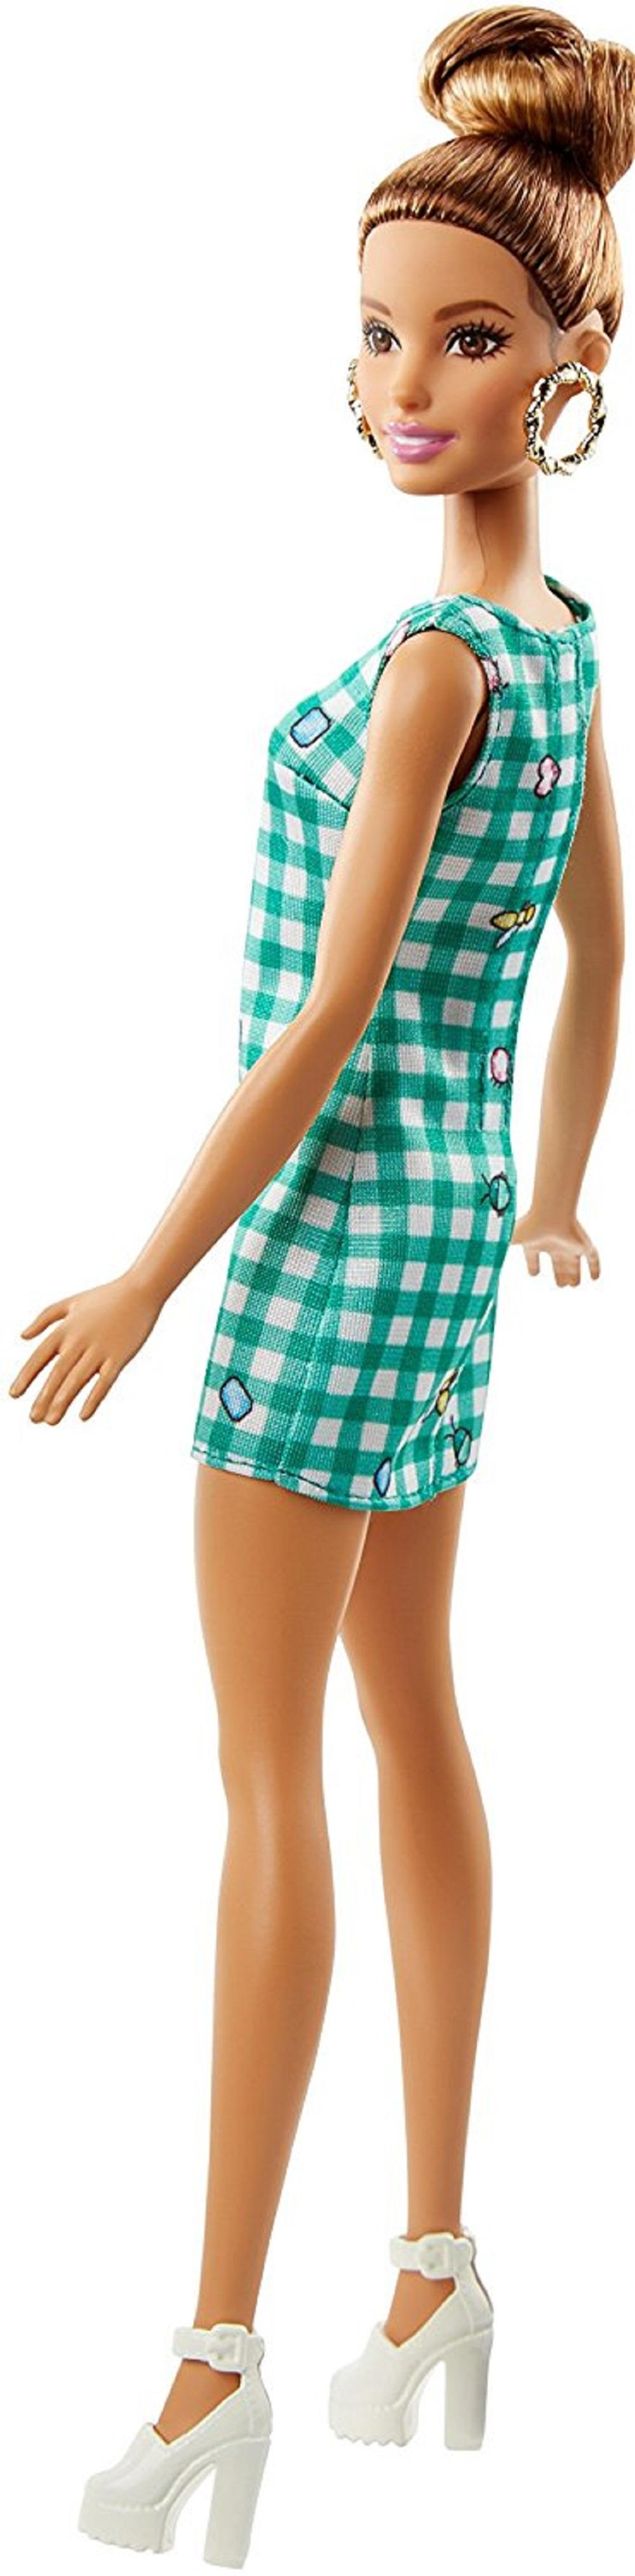 Amazon Com Barbie Fashionistas 50 Emerald Check Doll